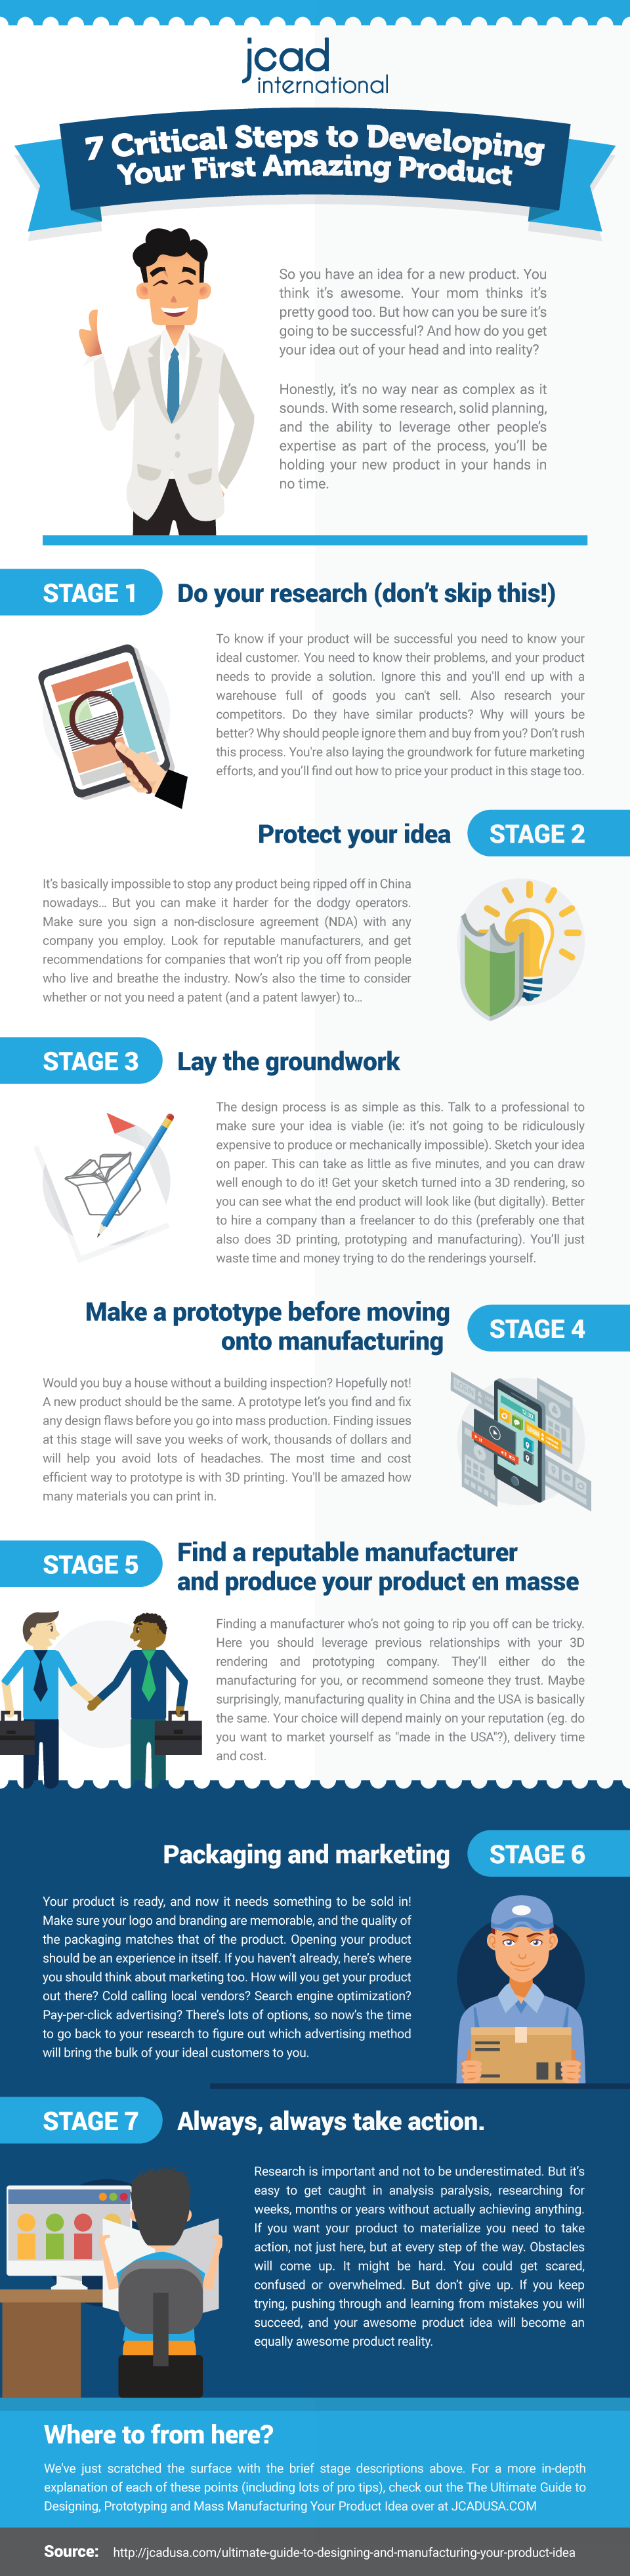 7-critical-steps-to-designing-your-first-amazing-product-infographic-galleryr